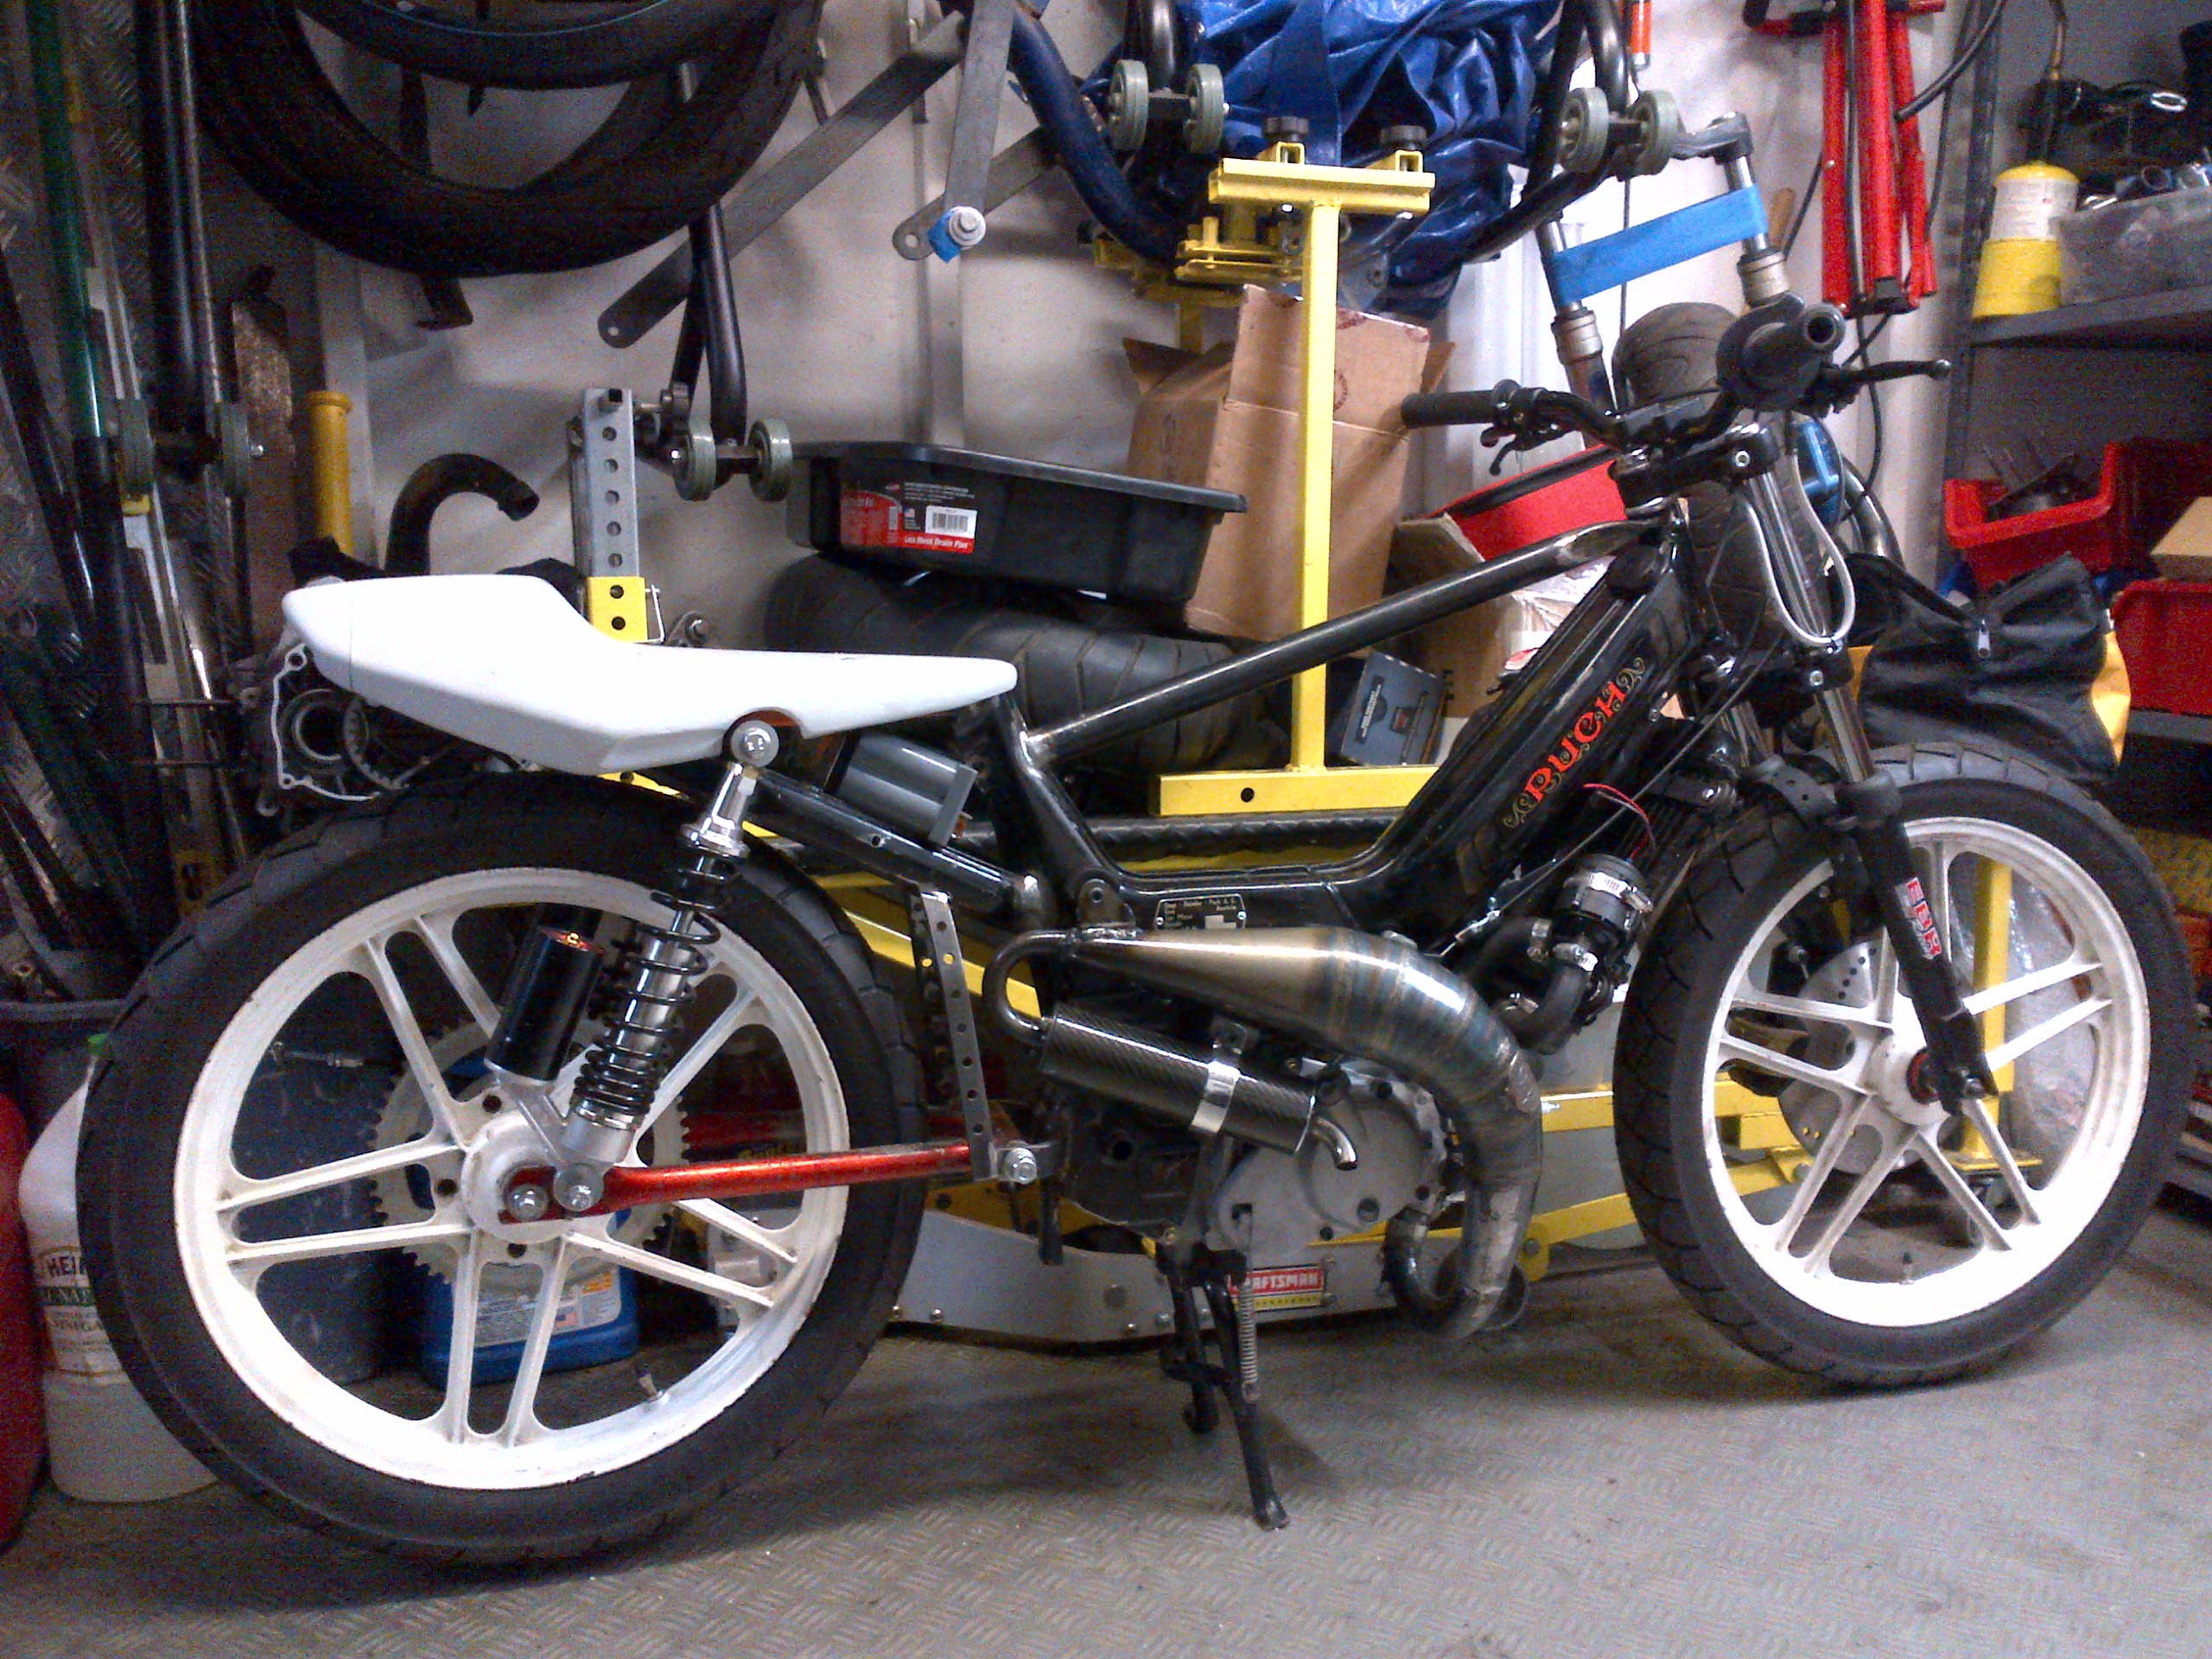 50cc h2o minarelli cases inducted done with the pipe and Car Tuning